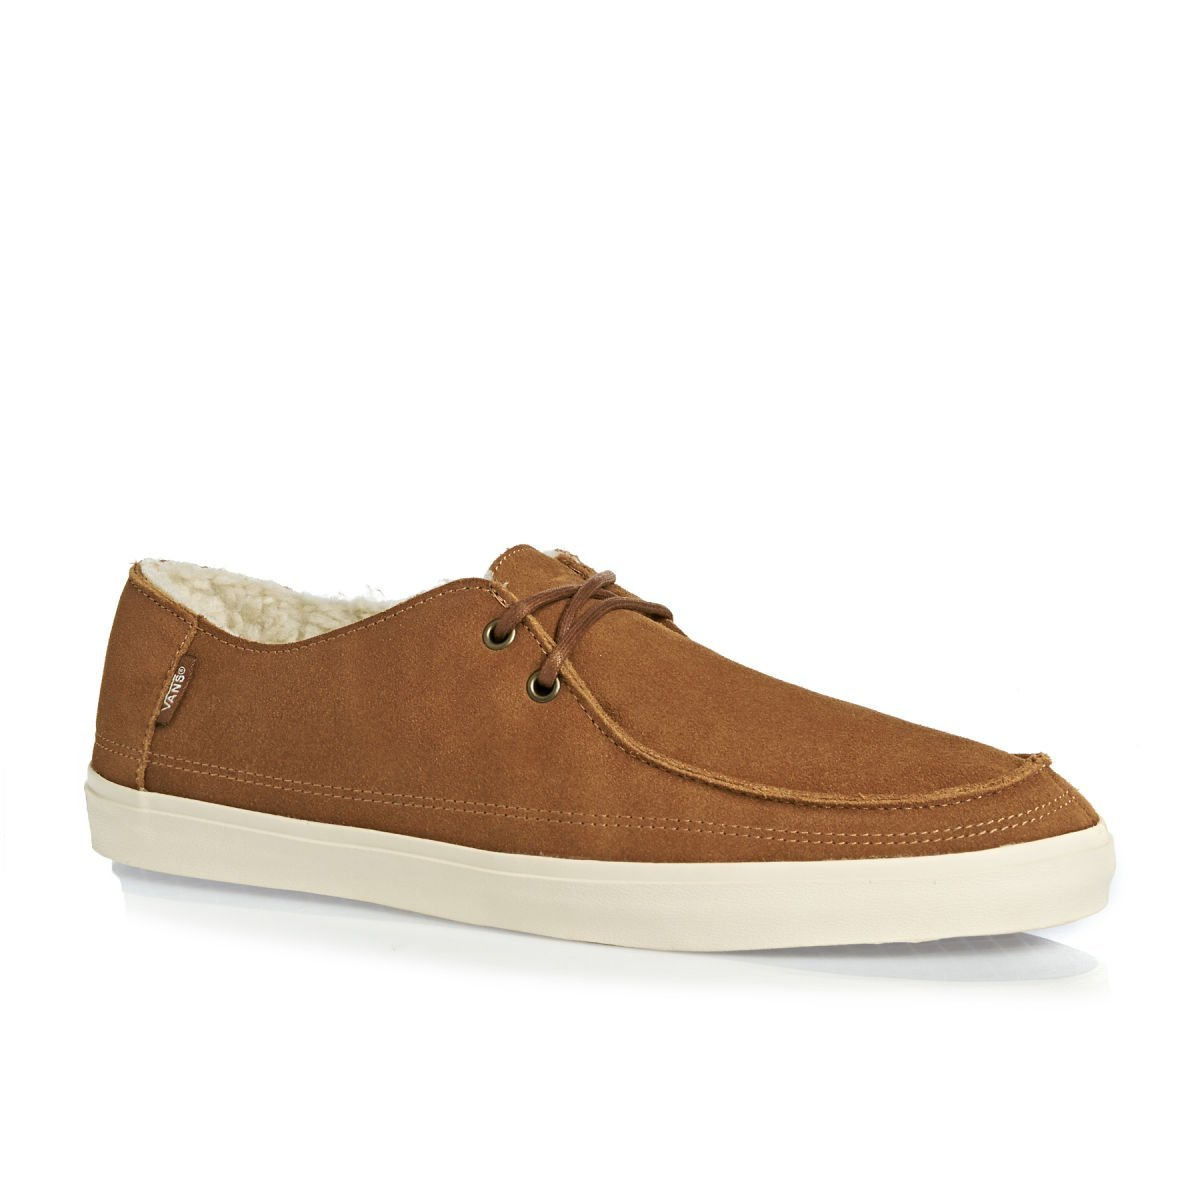 a6eaaa6066e294 Vans Sneaker Men Rata Vulc Sf Sneakers  Amazon.co.uk  Shoes   Bags